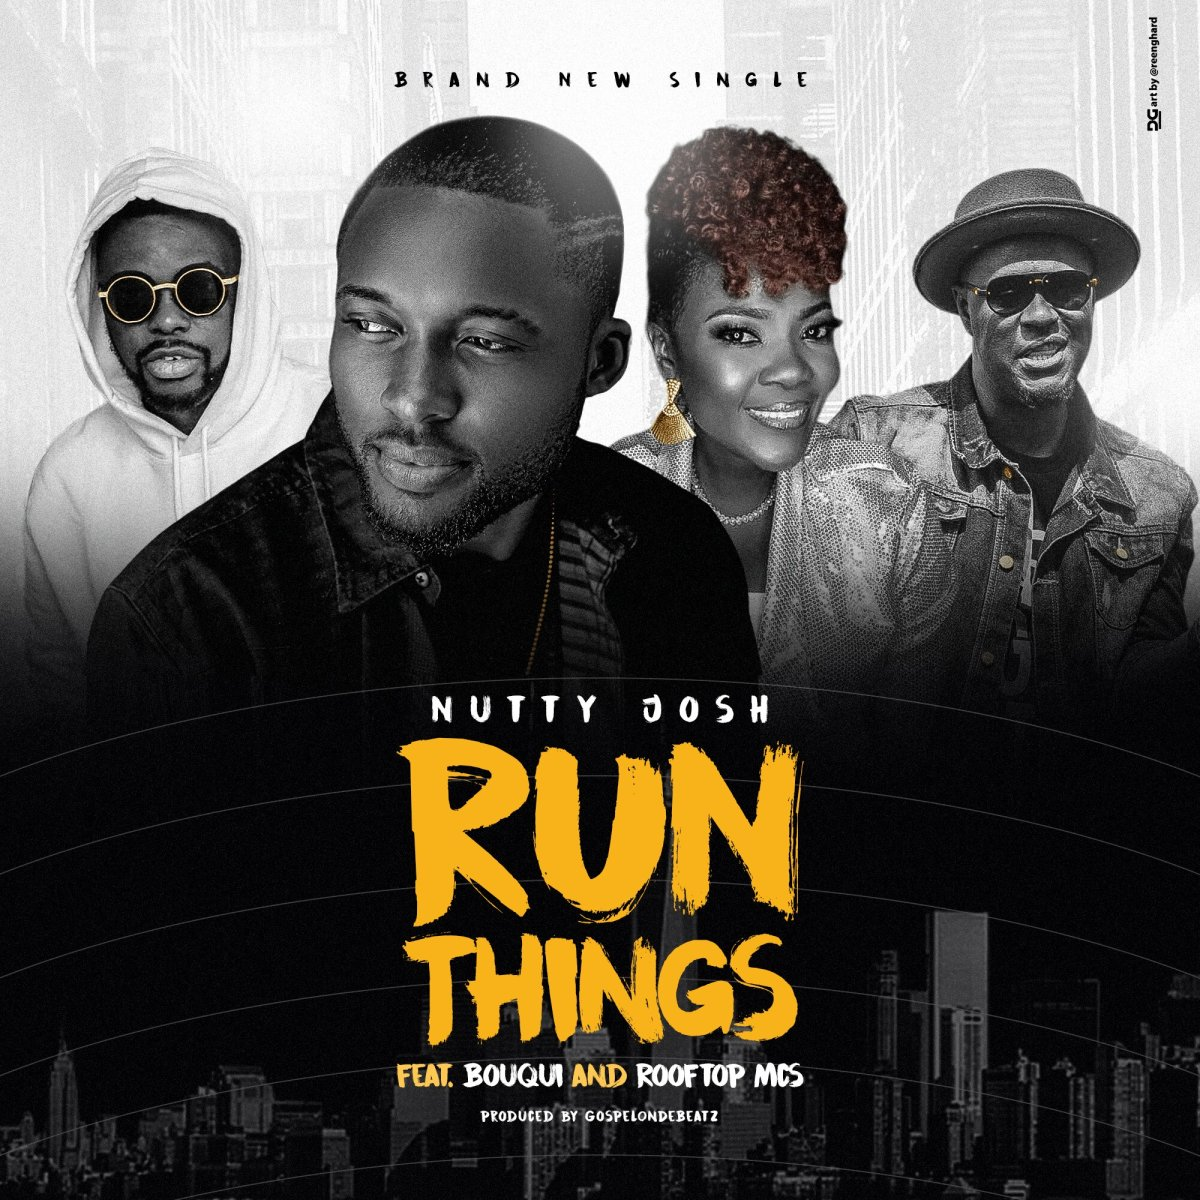 DOWNLOAD Music: Nutty Josh - Run Things (ft. Bouqui & Rooftop MCs)